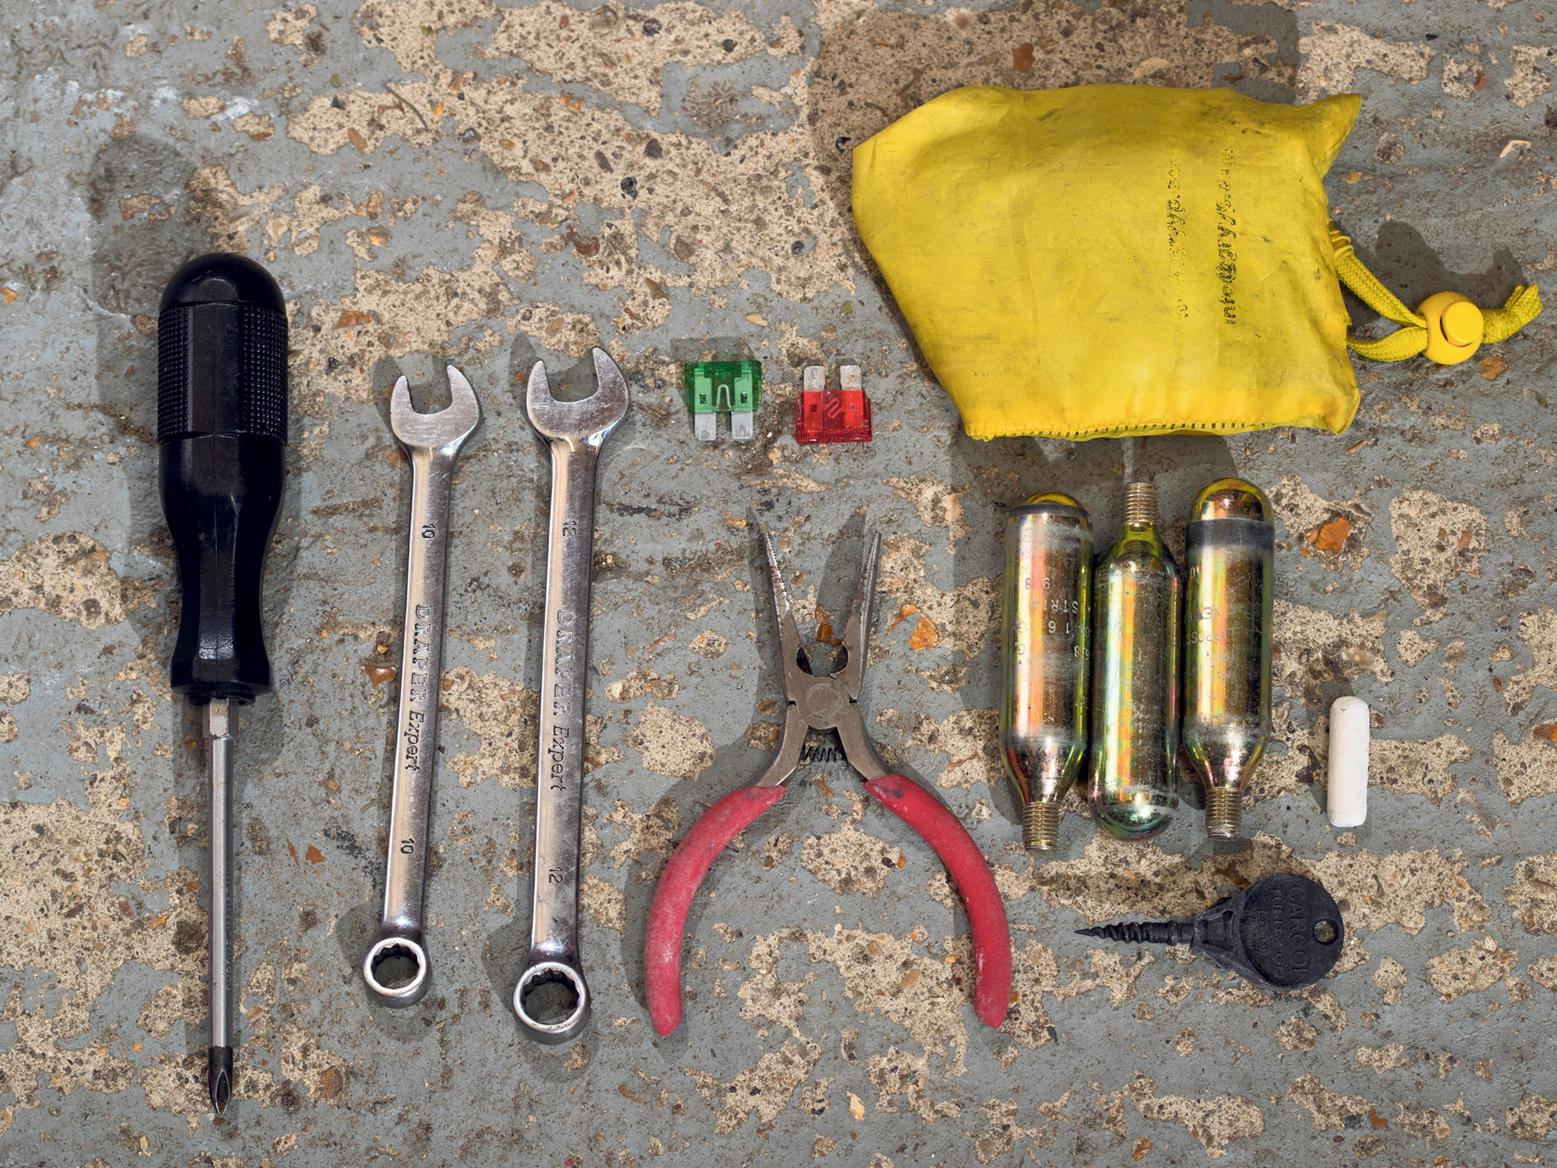 Tools are very handy when repairing your bike on the move